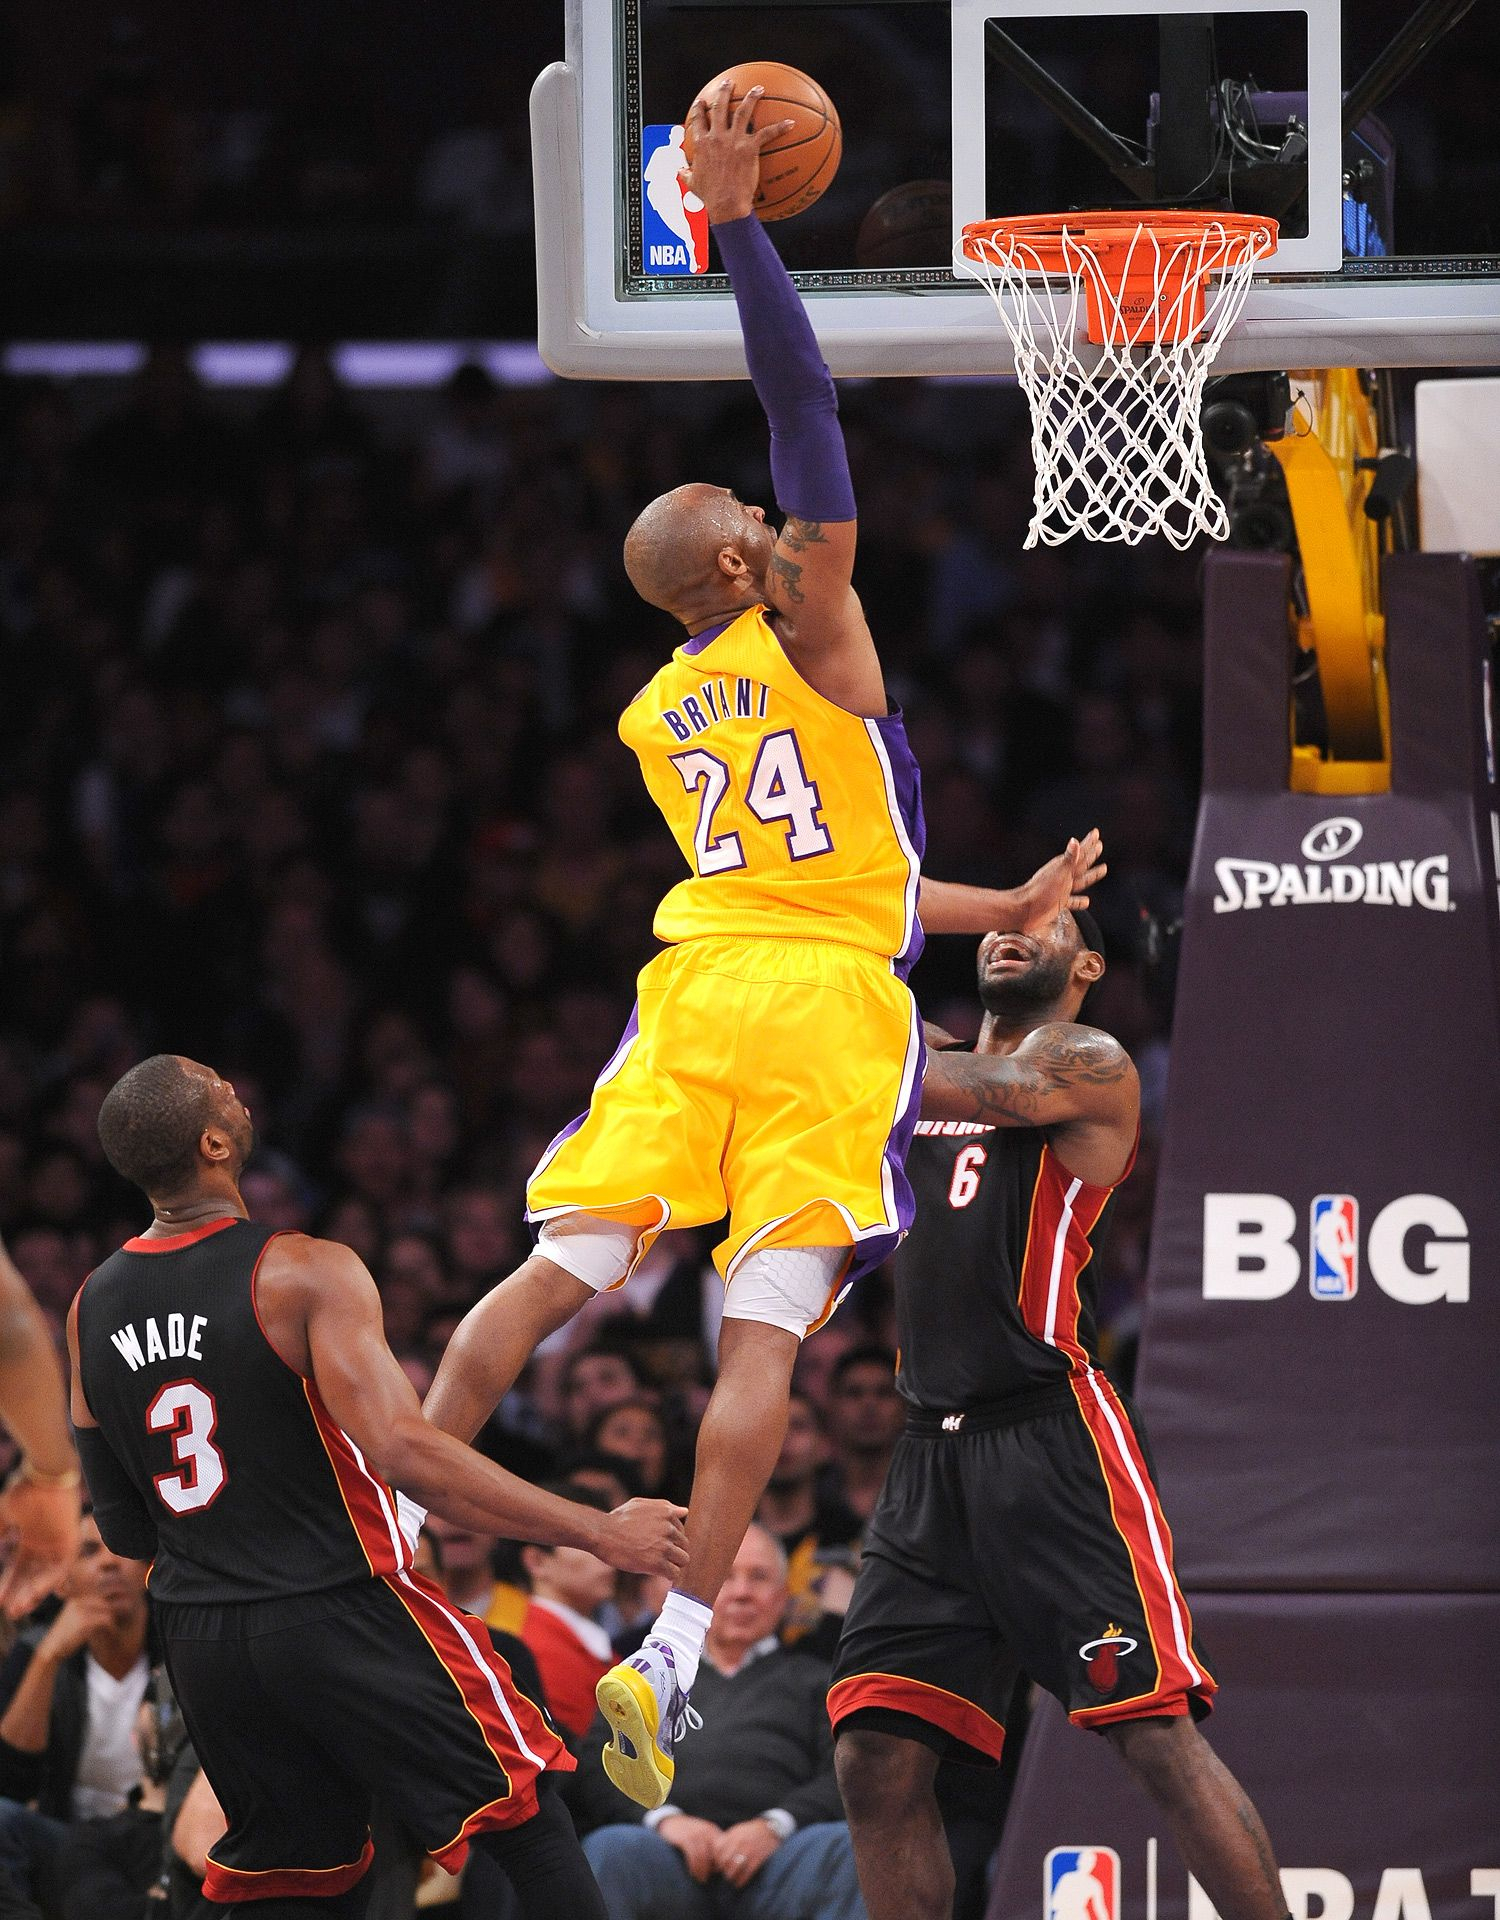 image for kobe bryant dunks wallpaper images #0imkp | bobby